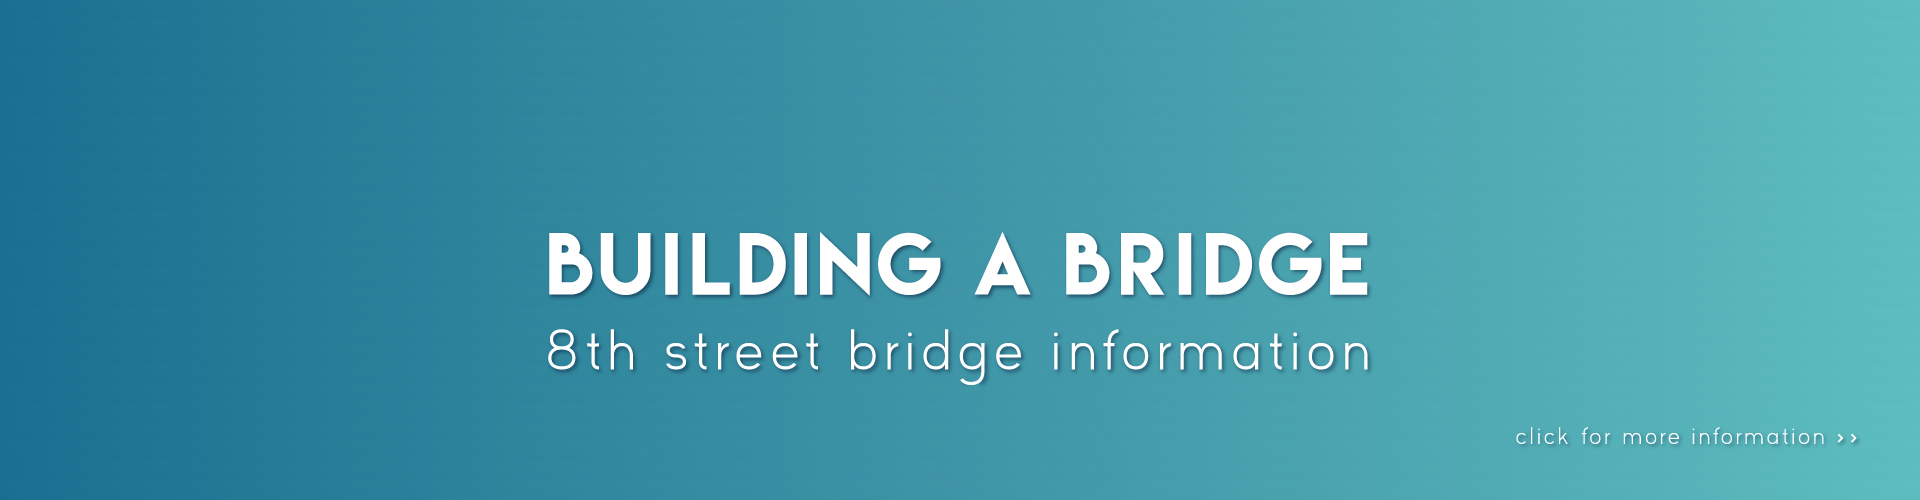 Building a Bridge banner